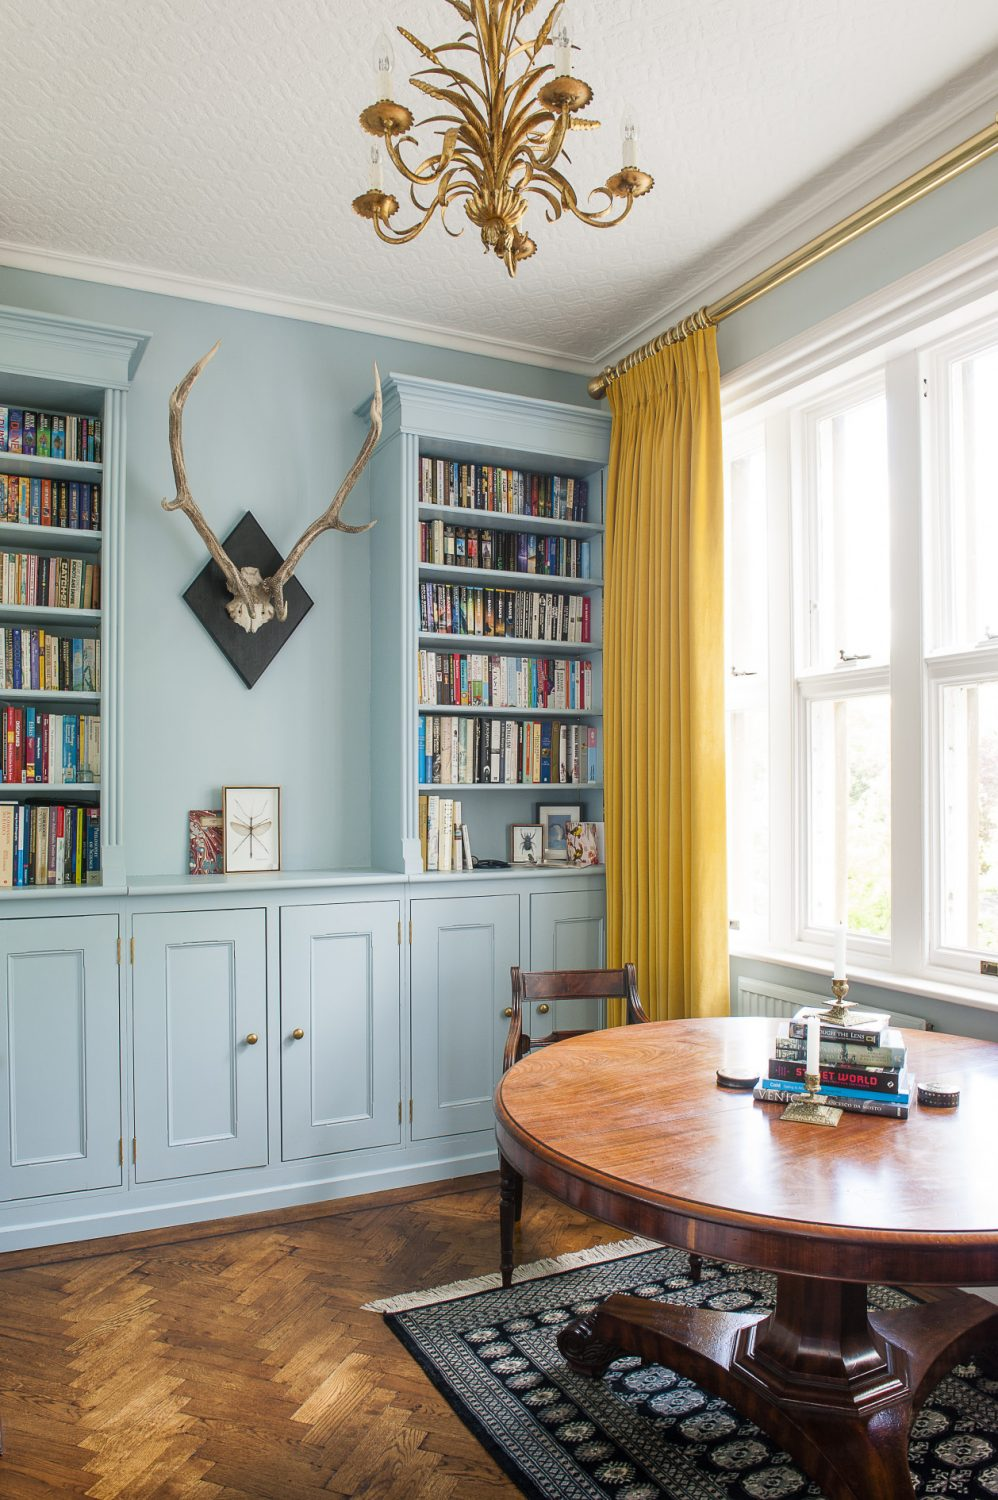 The 1840s Victorian circular table is attended by Regency chairs Dan had reupholstered in black damask. On the wall is a set of reindeer antlers